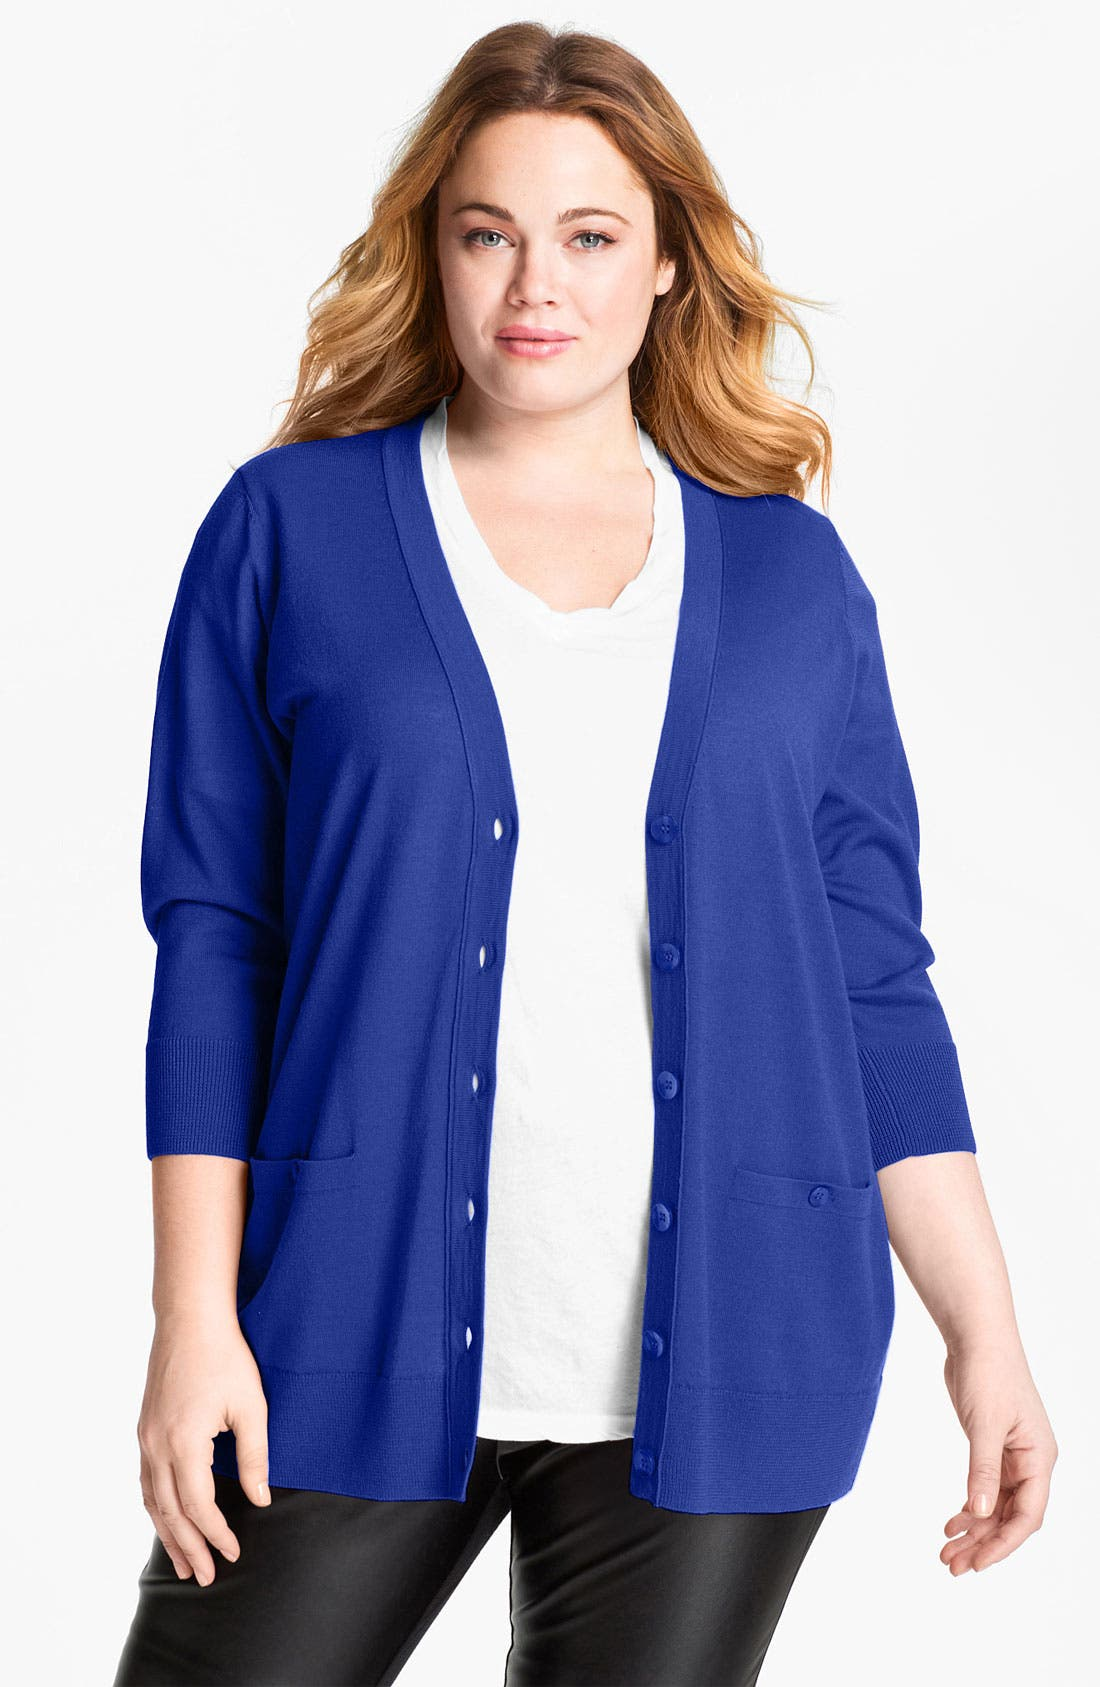 Alternate Image 1 Selected - Sejour 'Girlfriend' Three Quarter Sleeve Cardigan (Plus Size)